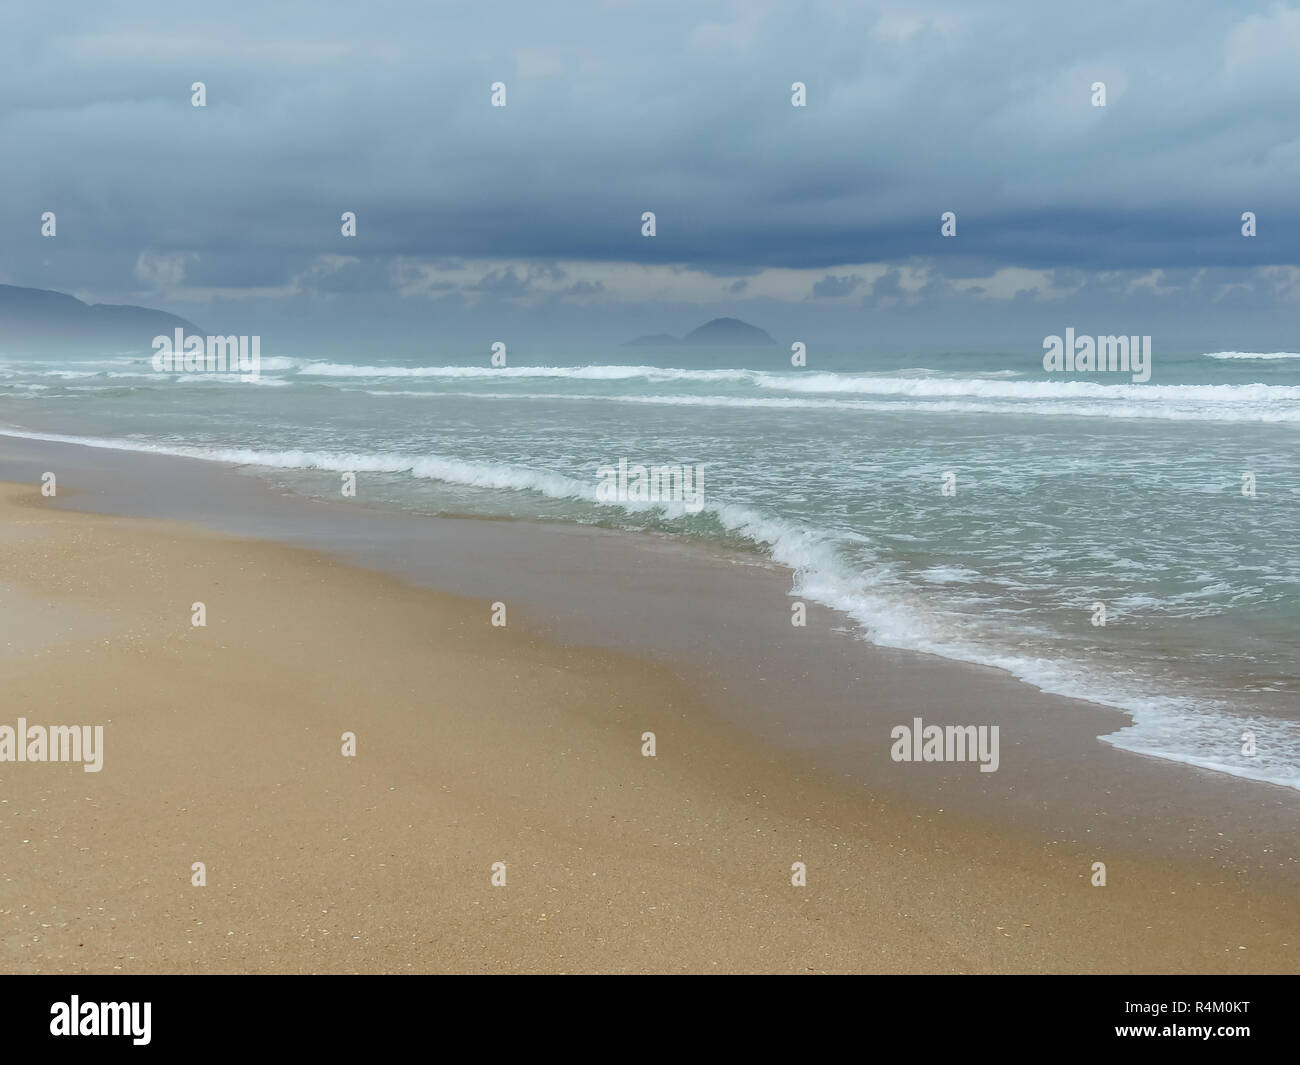 Eye level view of a beach with some low waves in the Florianópolis island - Stock Image